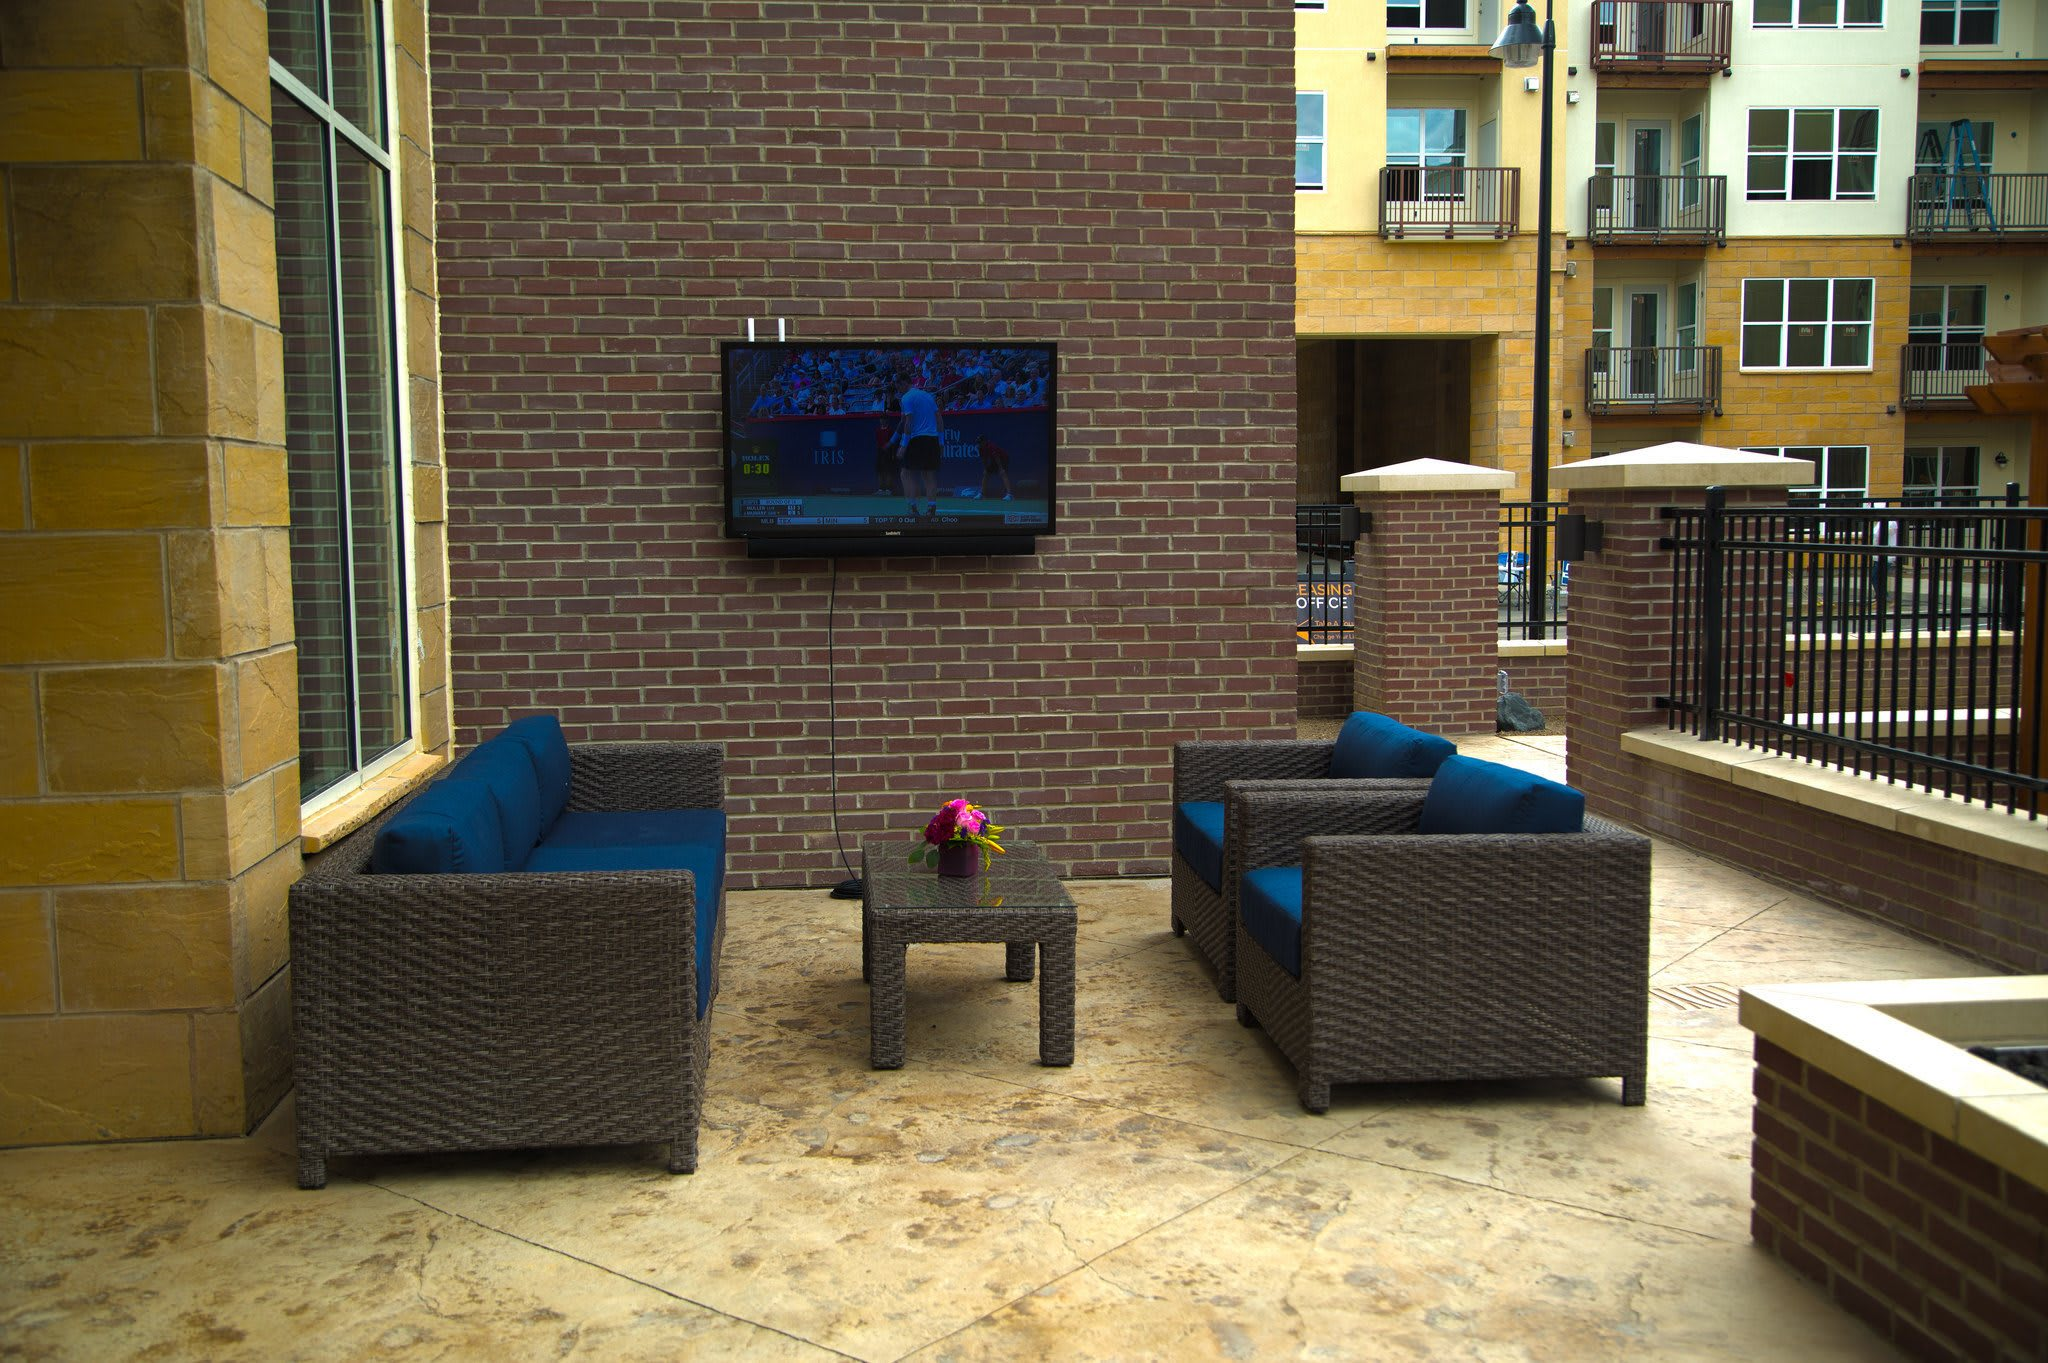 Apartments in Canonsburg has great outdoor seating